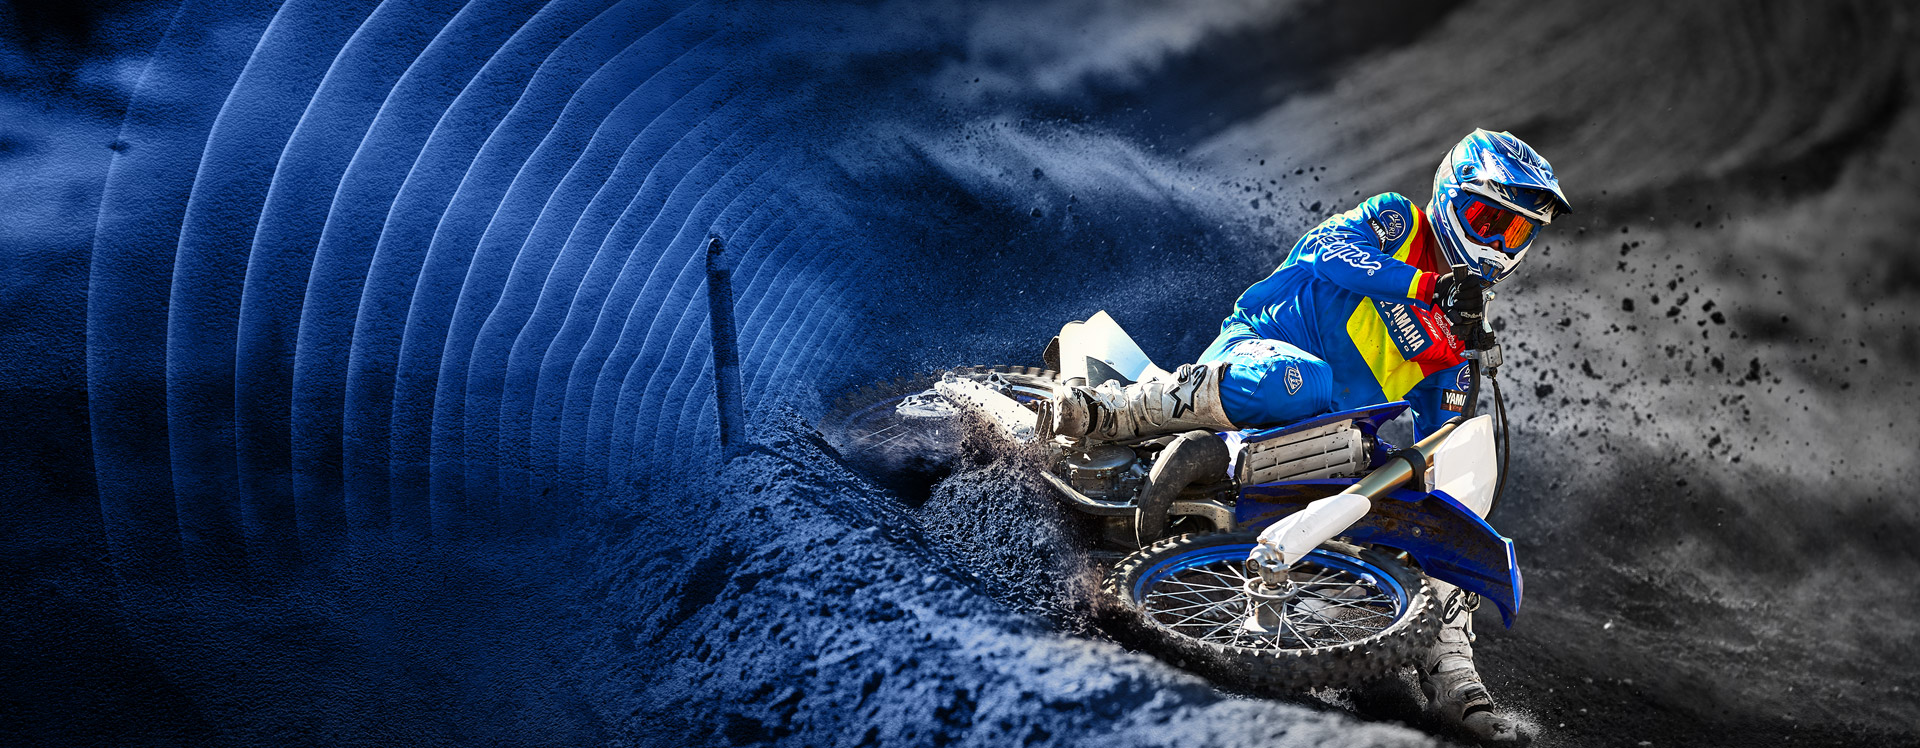 2020 Yamaha YZ125 Motocross Motorcycle - Model Home